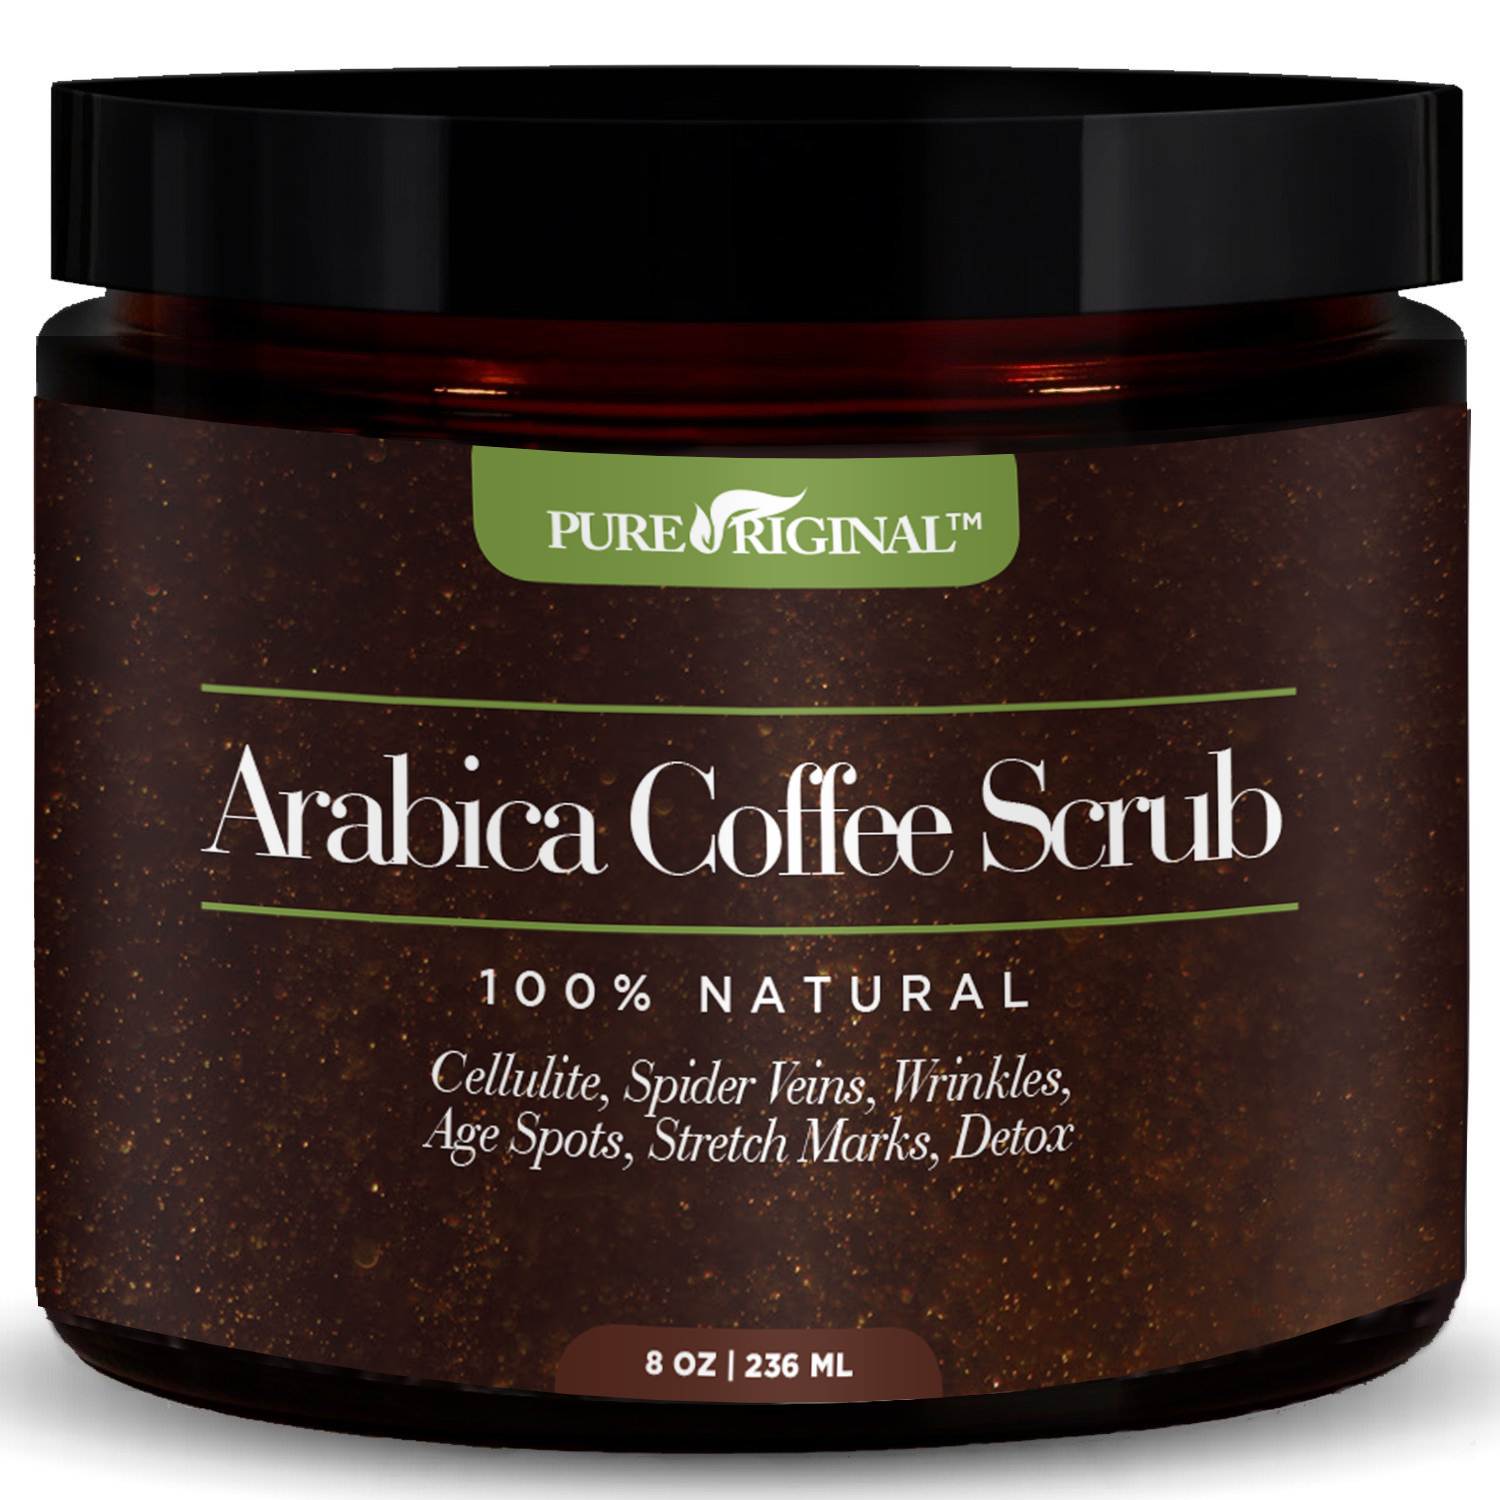 Coffee-Scrub-on-Jar